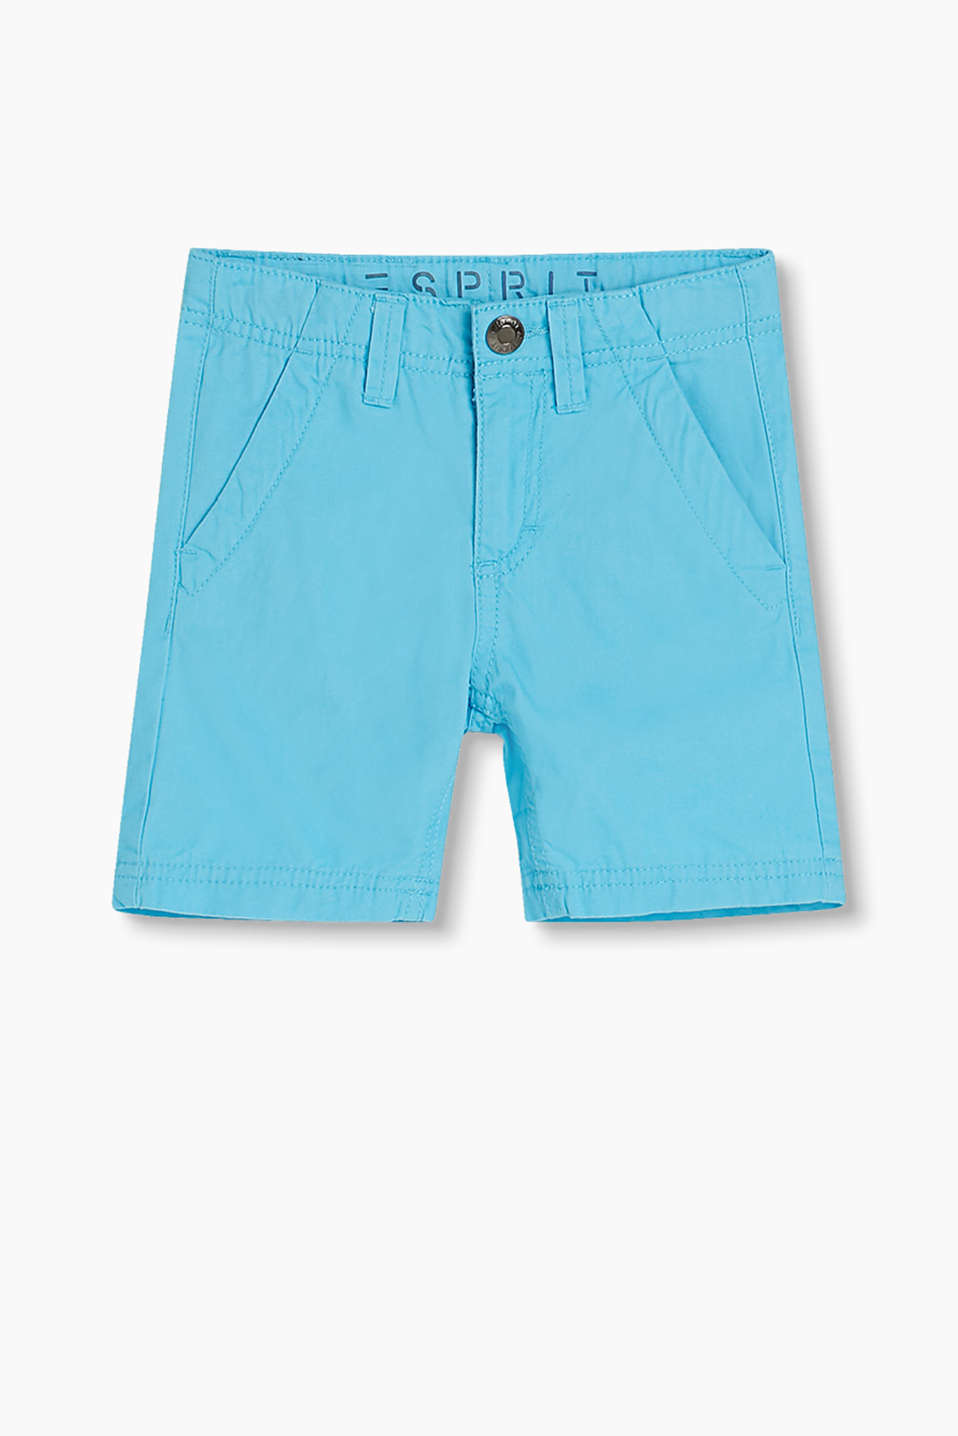 Shorts in soft cotton twill in a vibrant colour